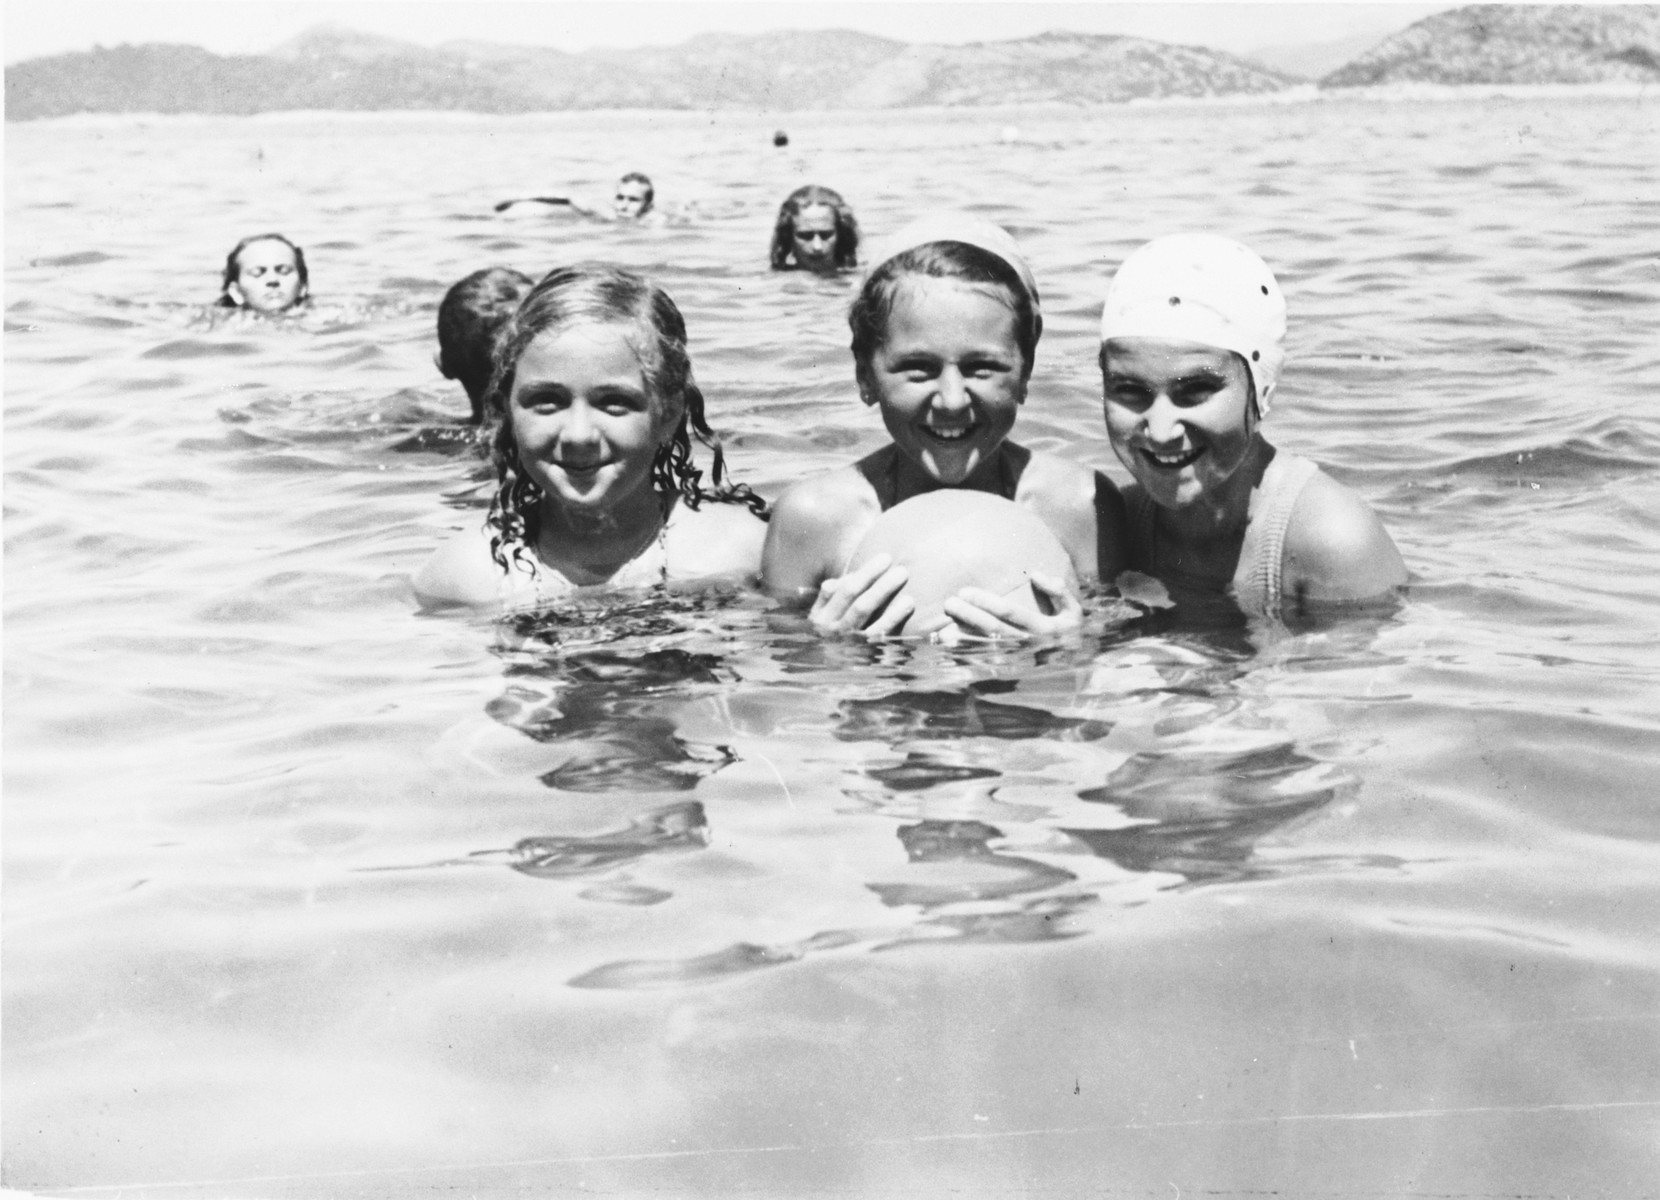 A Jewish family swimming in the Adriatic Sea.  Pictured are members of the Spitzer family on vacation on the island of Lopud, where during WWII they would be imprisoned in an Italian internment camp.